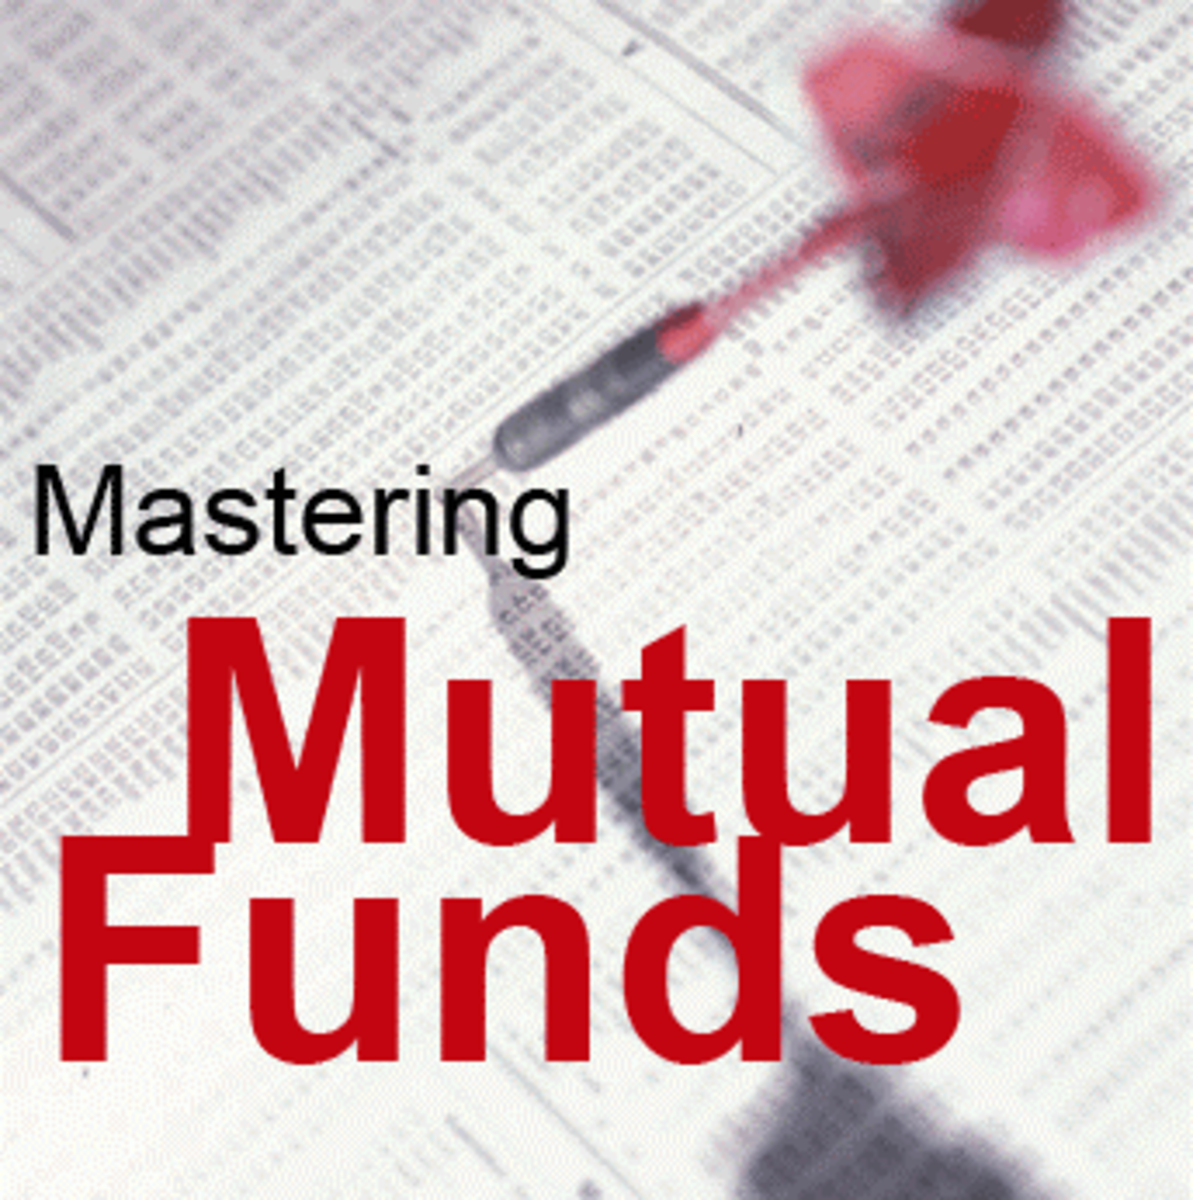 How To Beat The Stock Market Averages When Investing In Mutual Funds